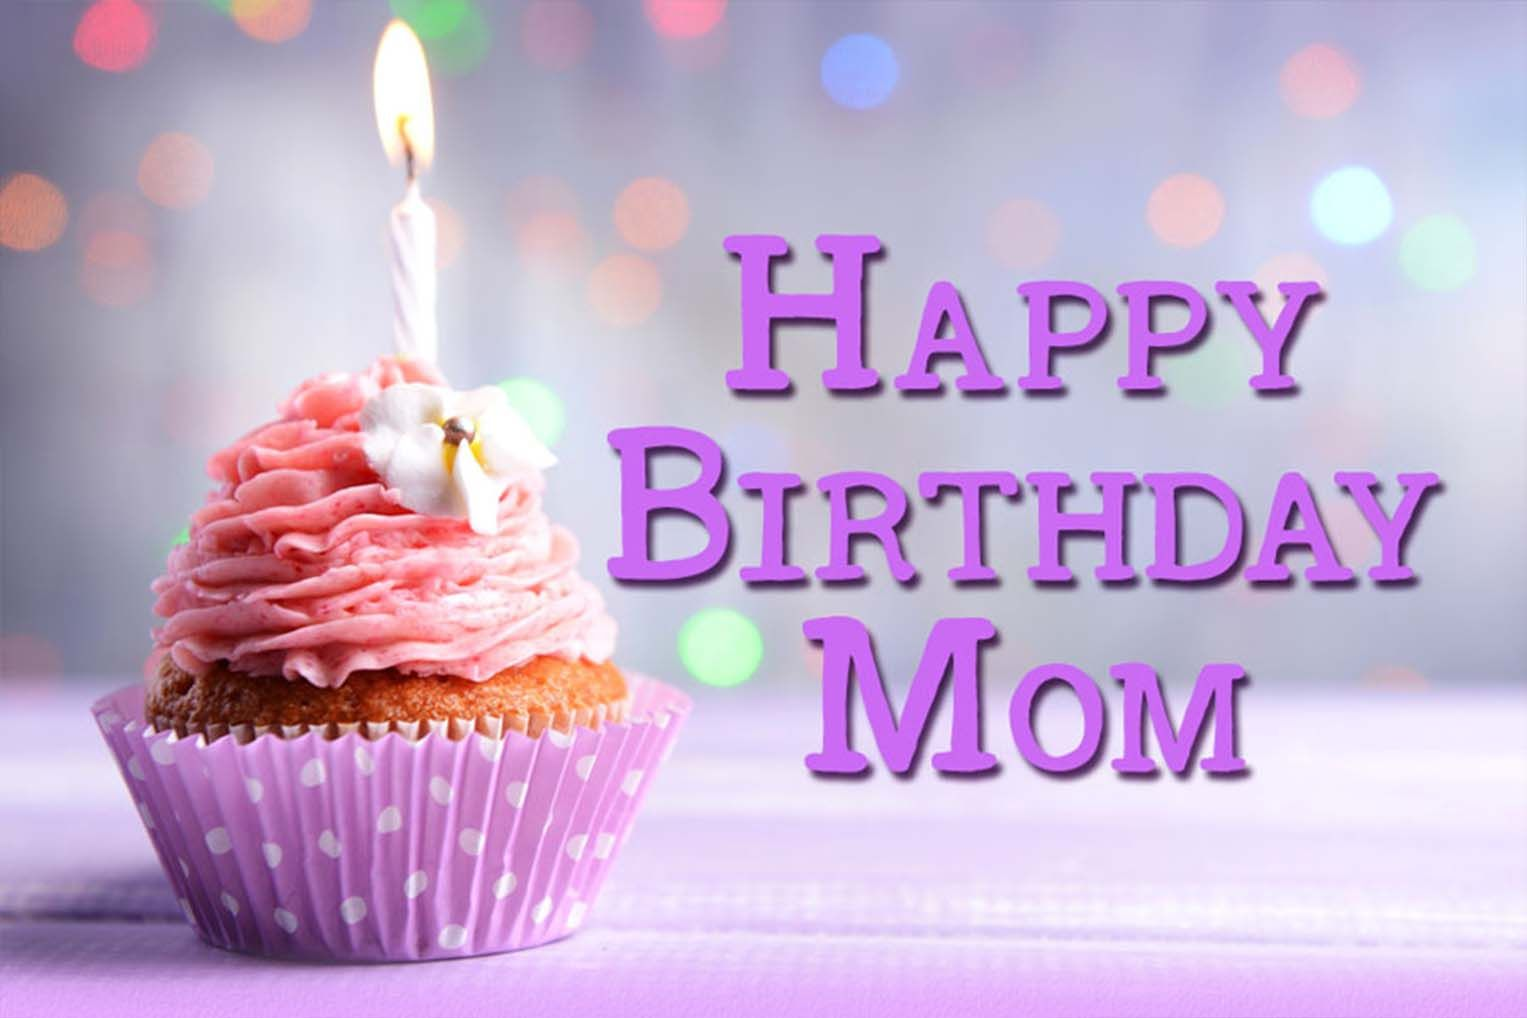 35 happy birthday mom quotes happy birthday mom quotes happy in this article you can find the best collection of happy birthday mother wishes happy birthday wishes happy birthday messages kristyandbryce Images